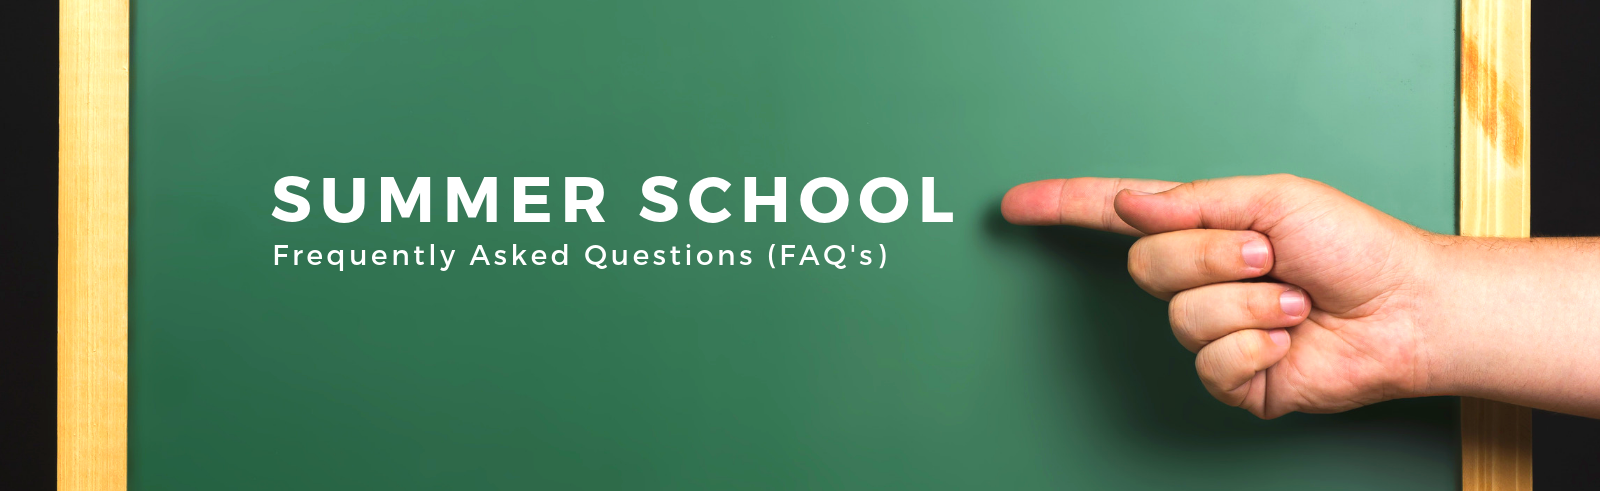 Frequently Asked Questions Page Banner